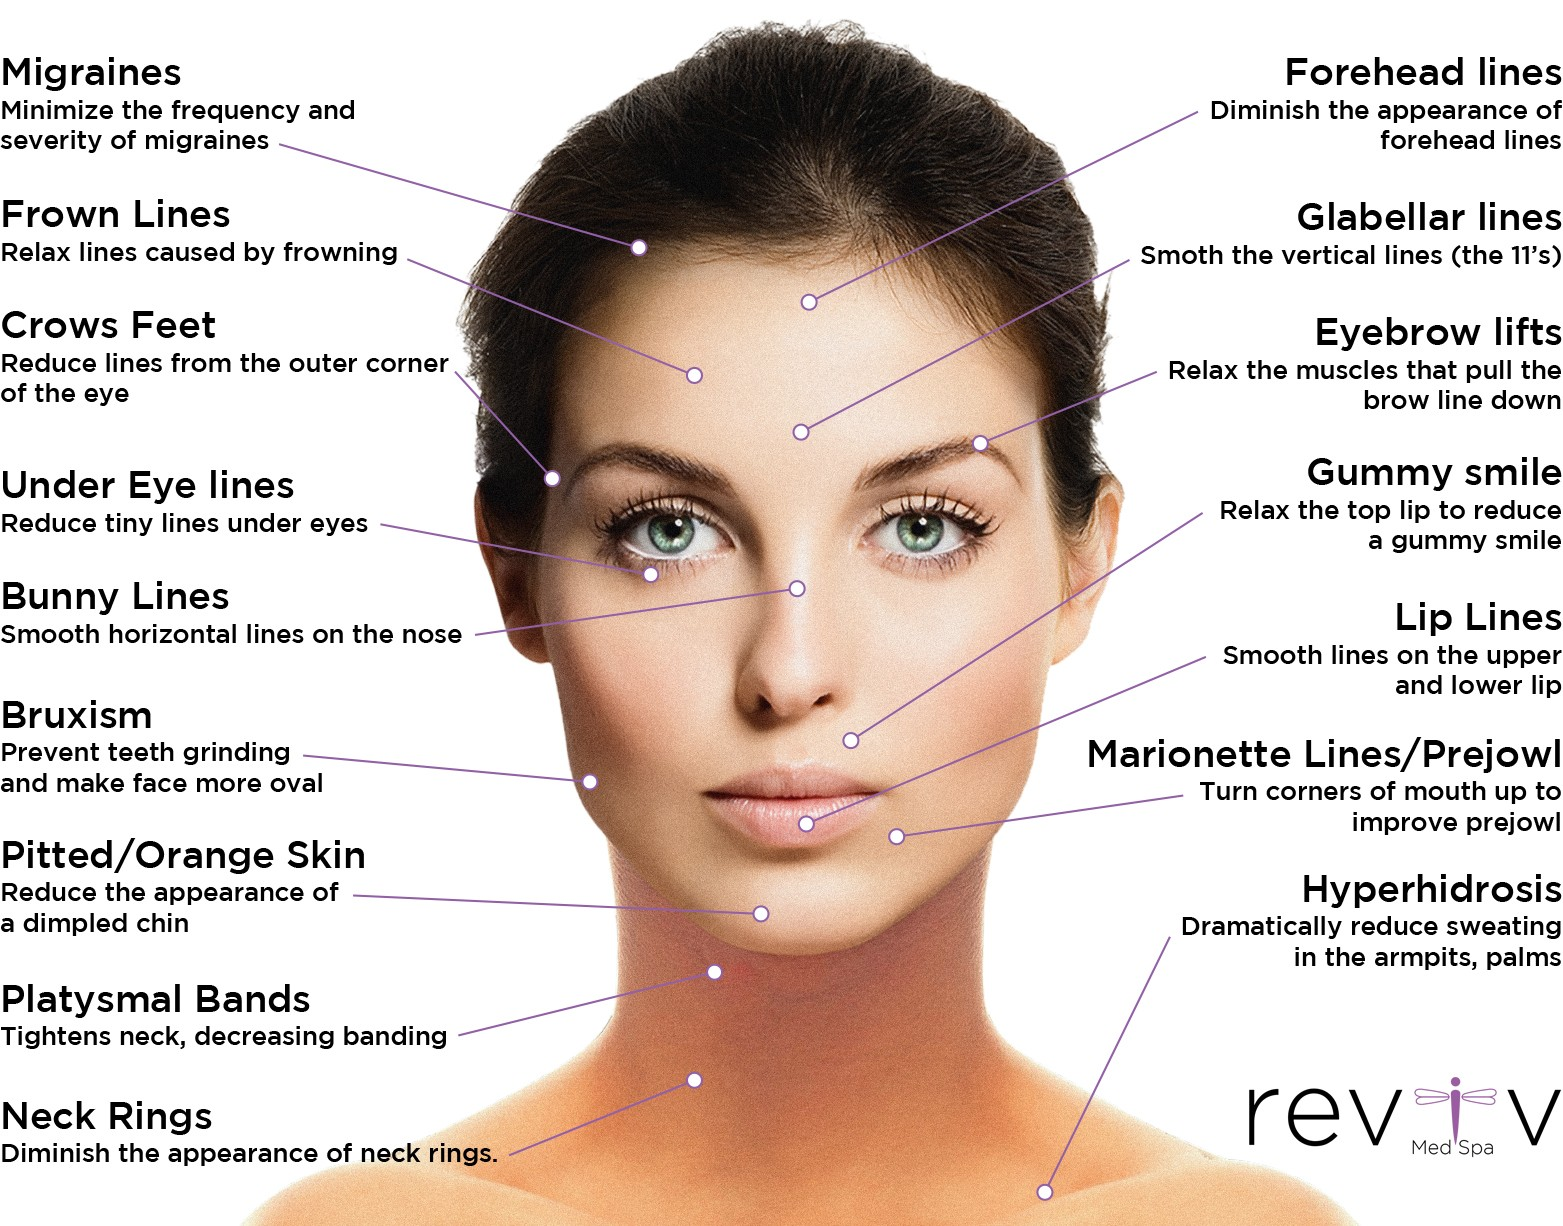 Botox Treatment Uses Image